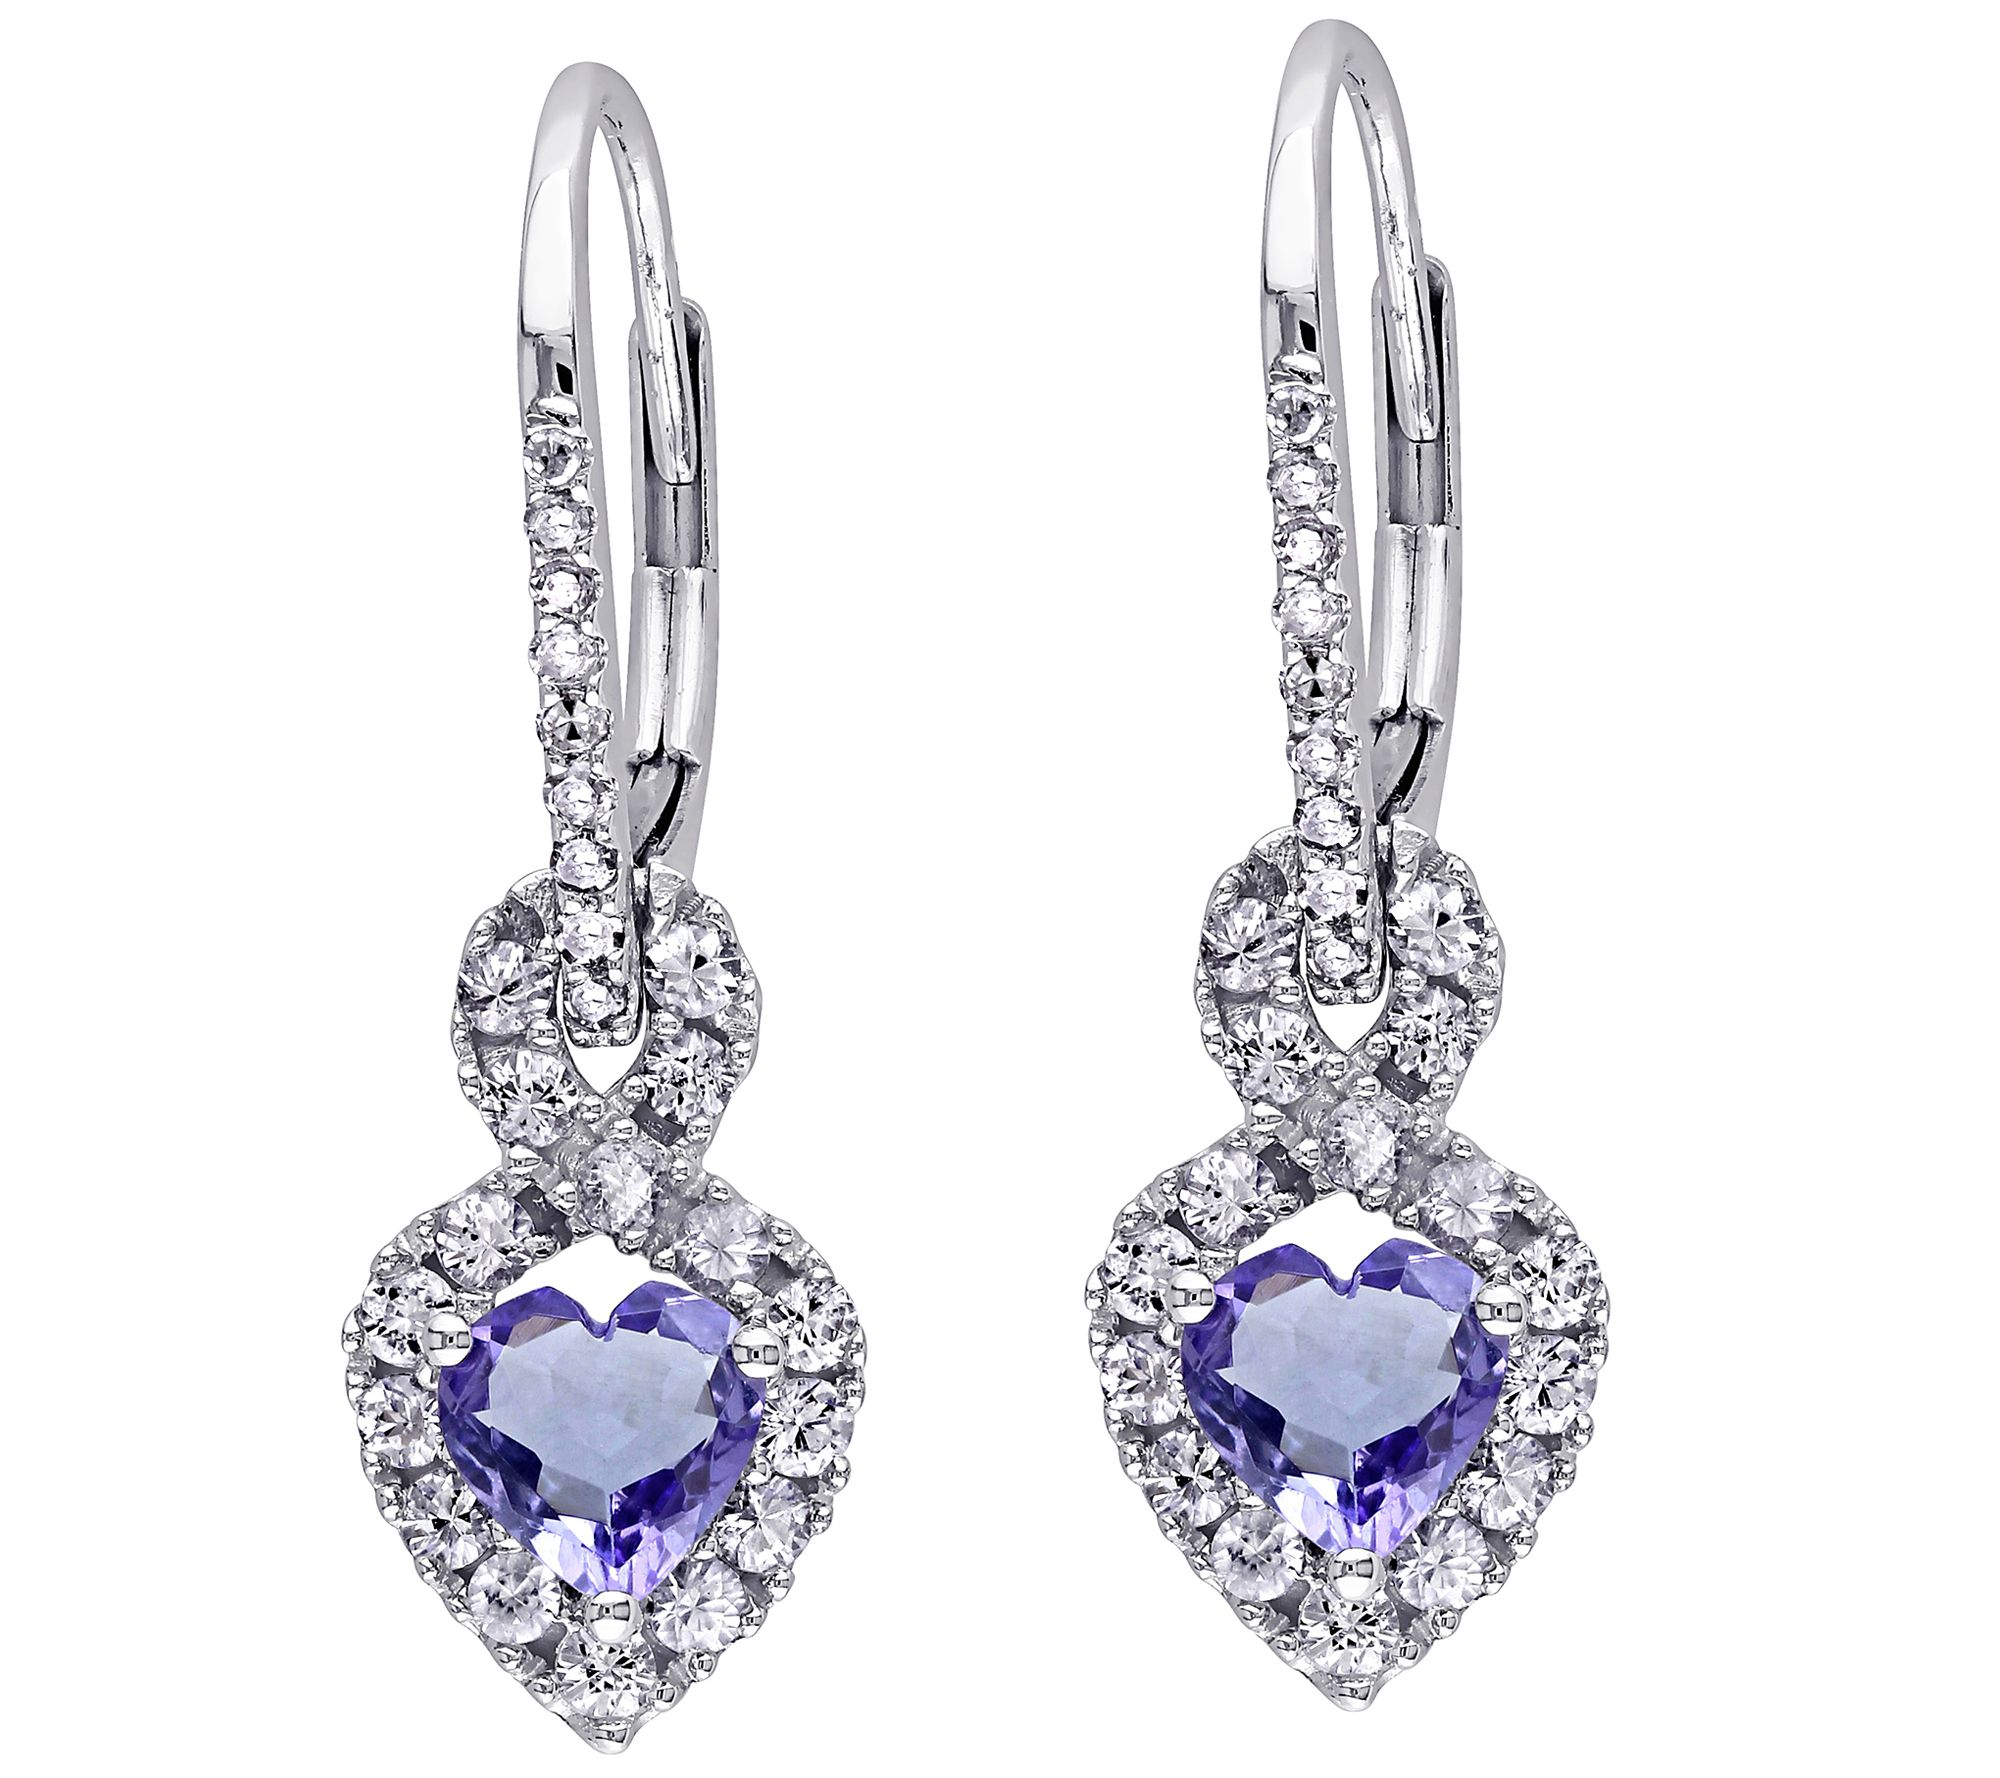 1 25 Cttw Gemstone Diamond Accent Earrings 14k White Gold Page 1 Qvc Com